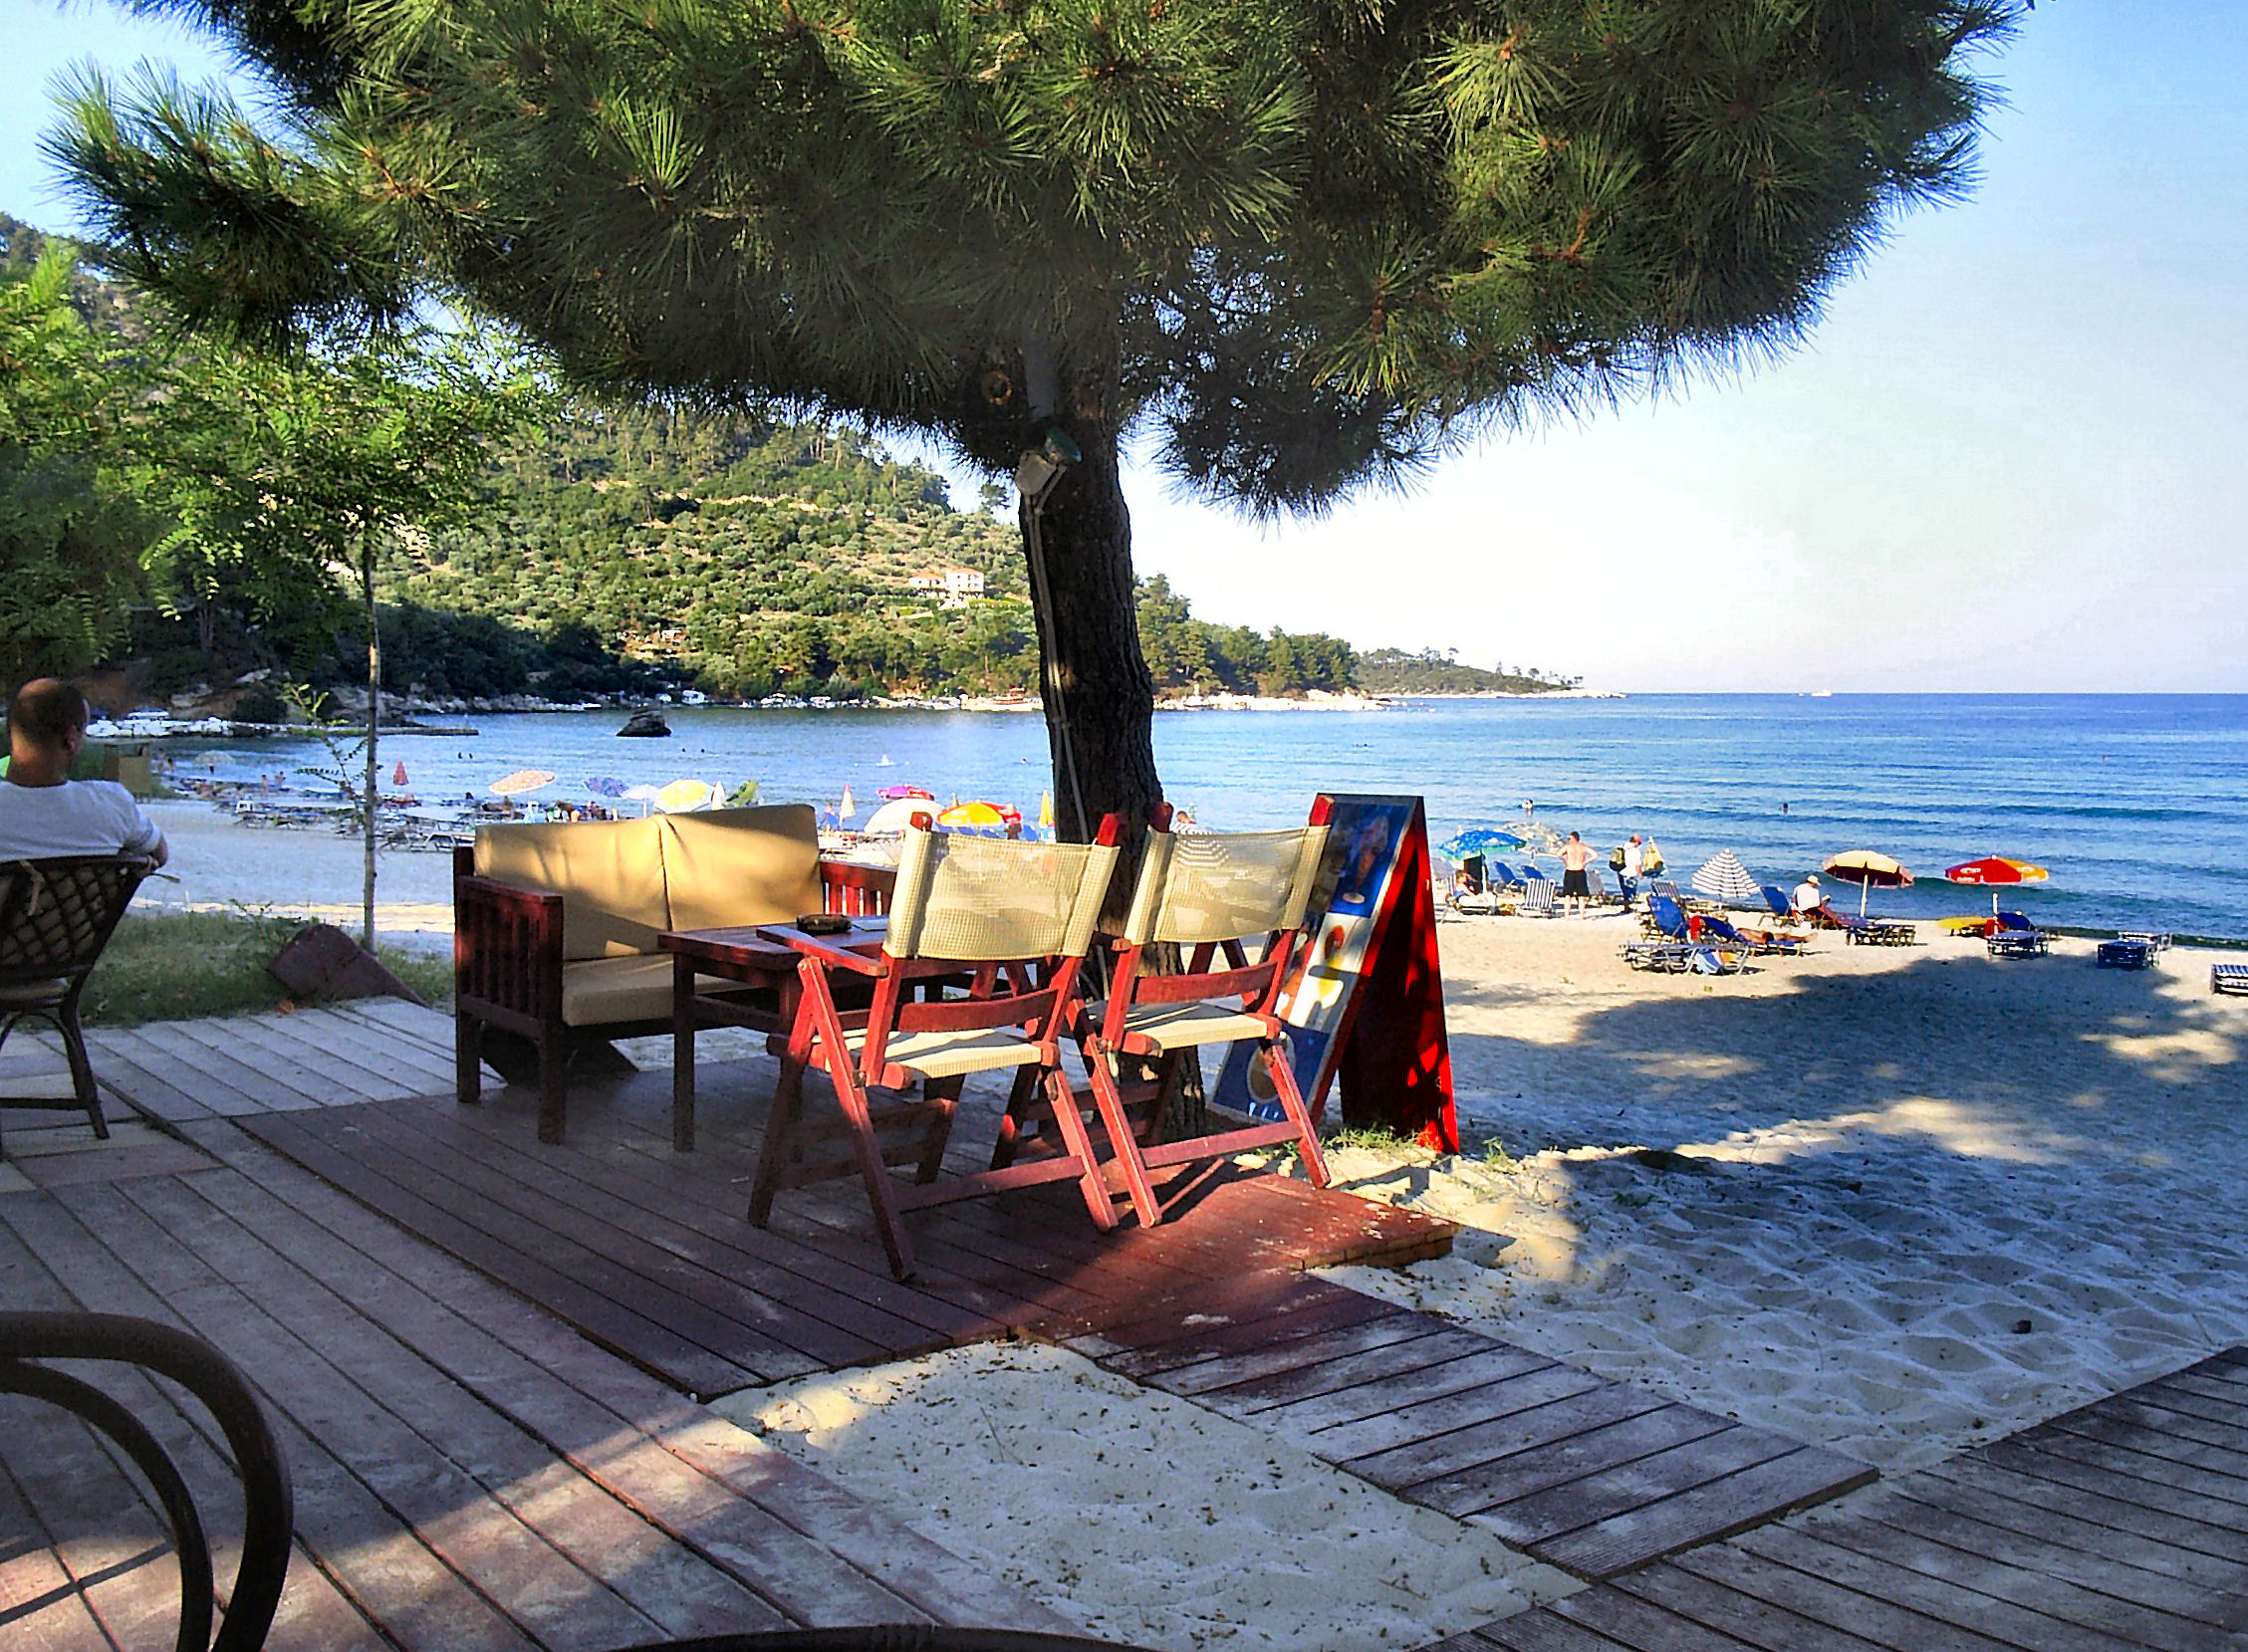 Cheap Holidays To Thassos Northern Aegean Islands Greece Cheap All Inclusive Holidays Thassos